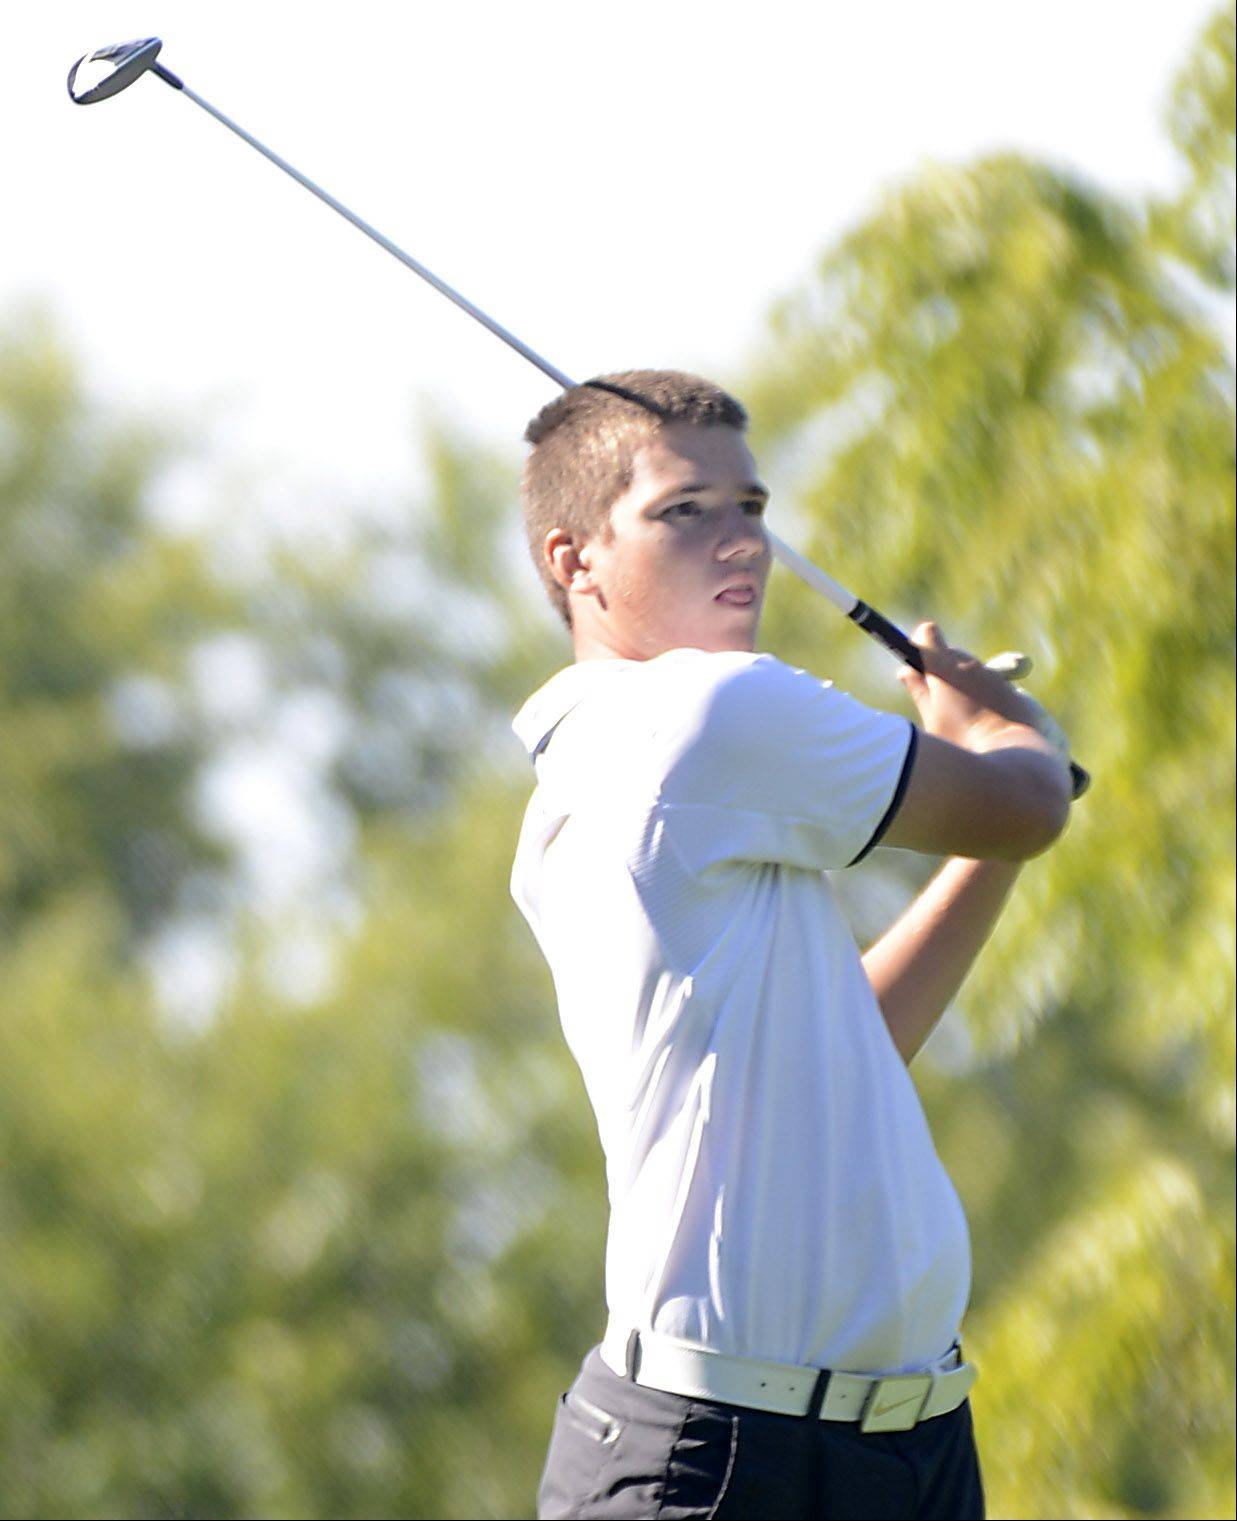 Lake Park's John Duggan tees off Monday at the Elgin boys golf invitational at Bartlett Golf Club.